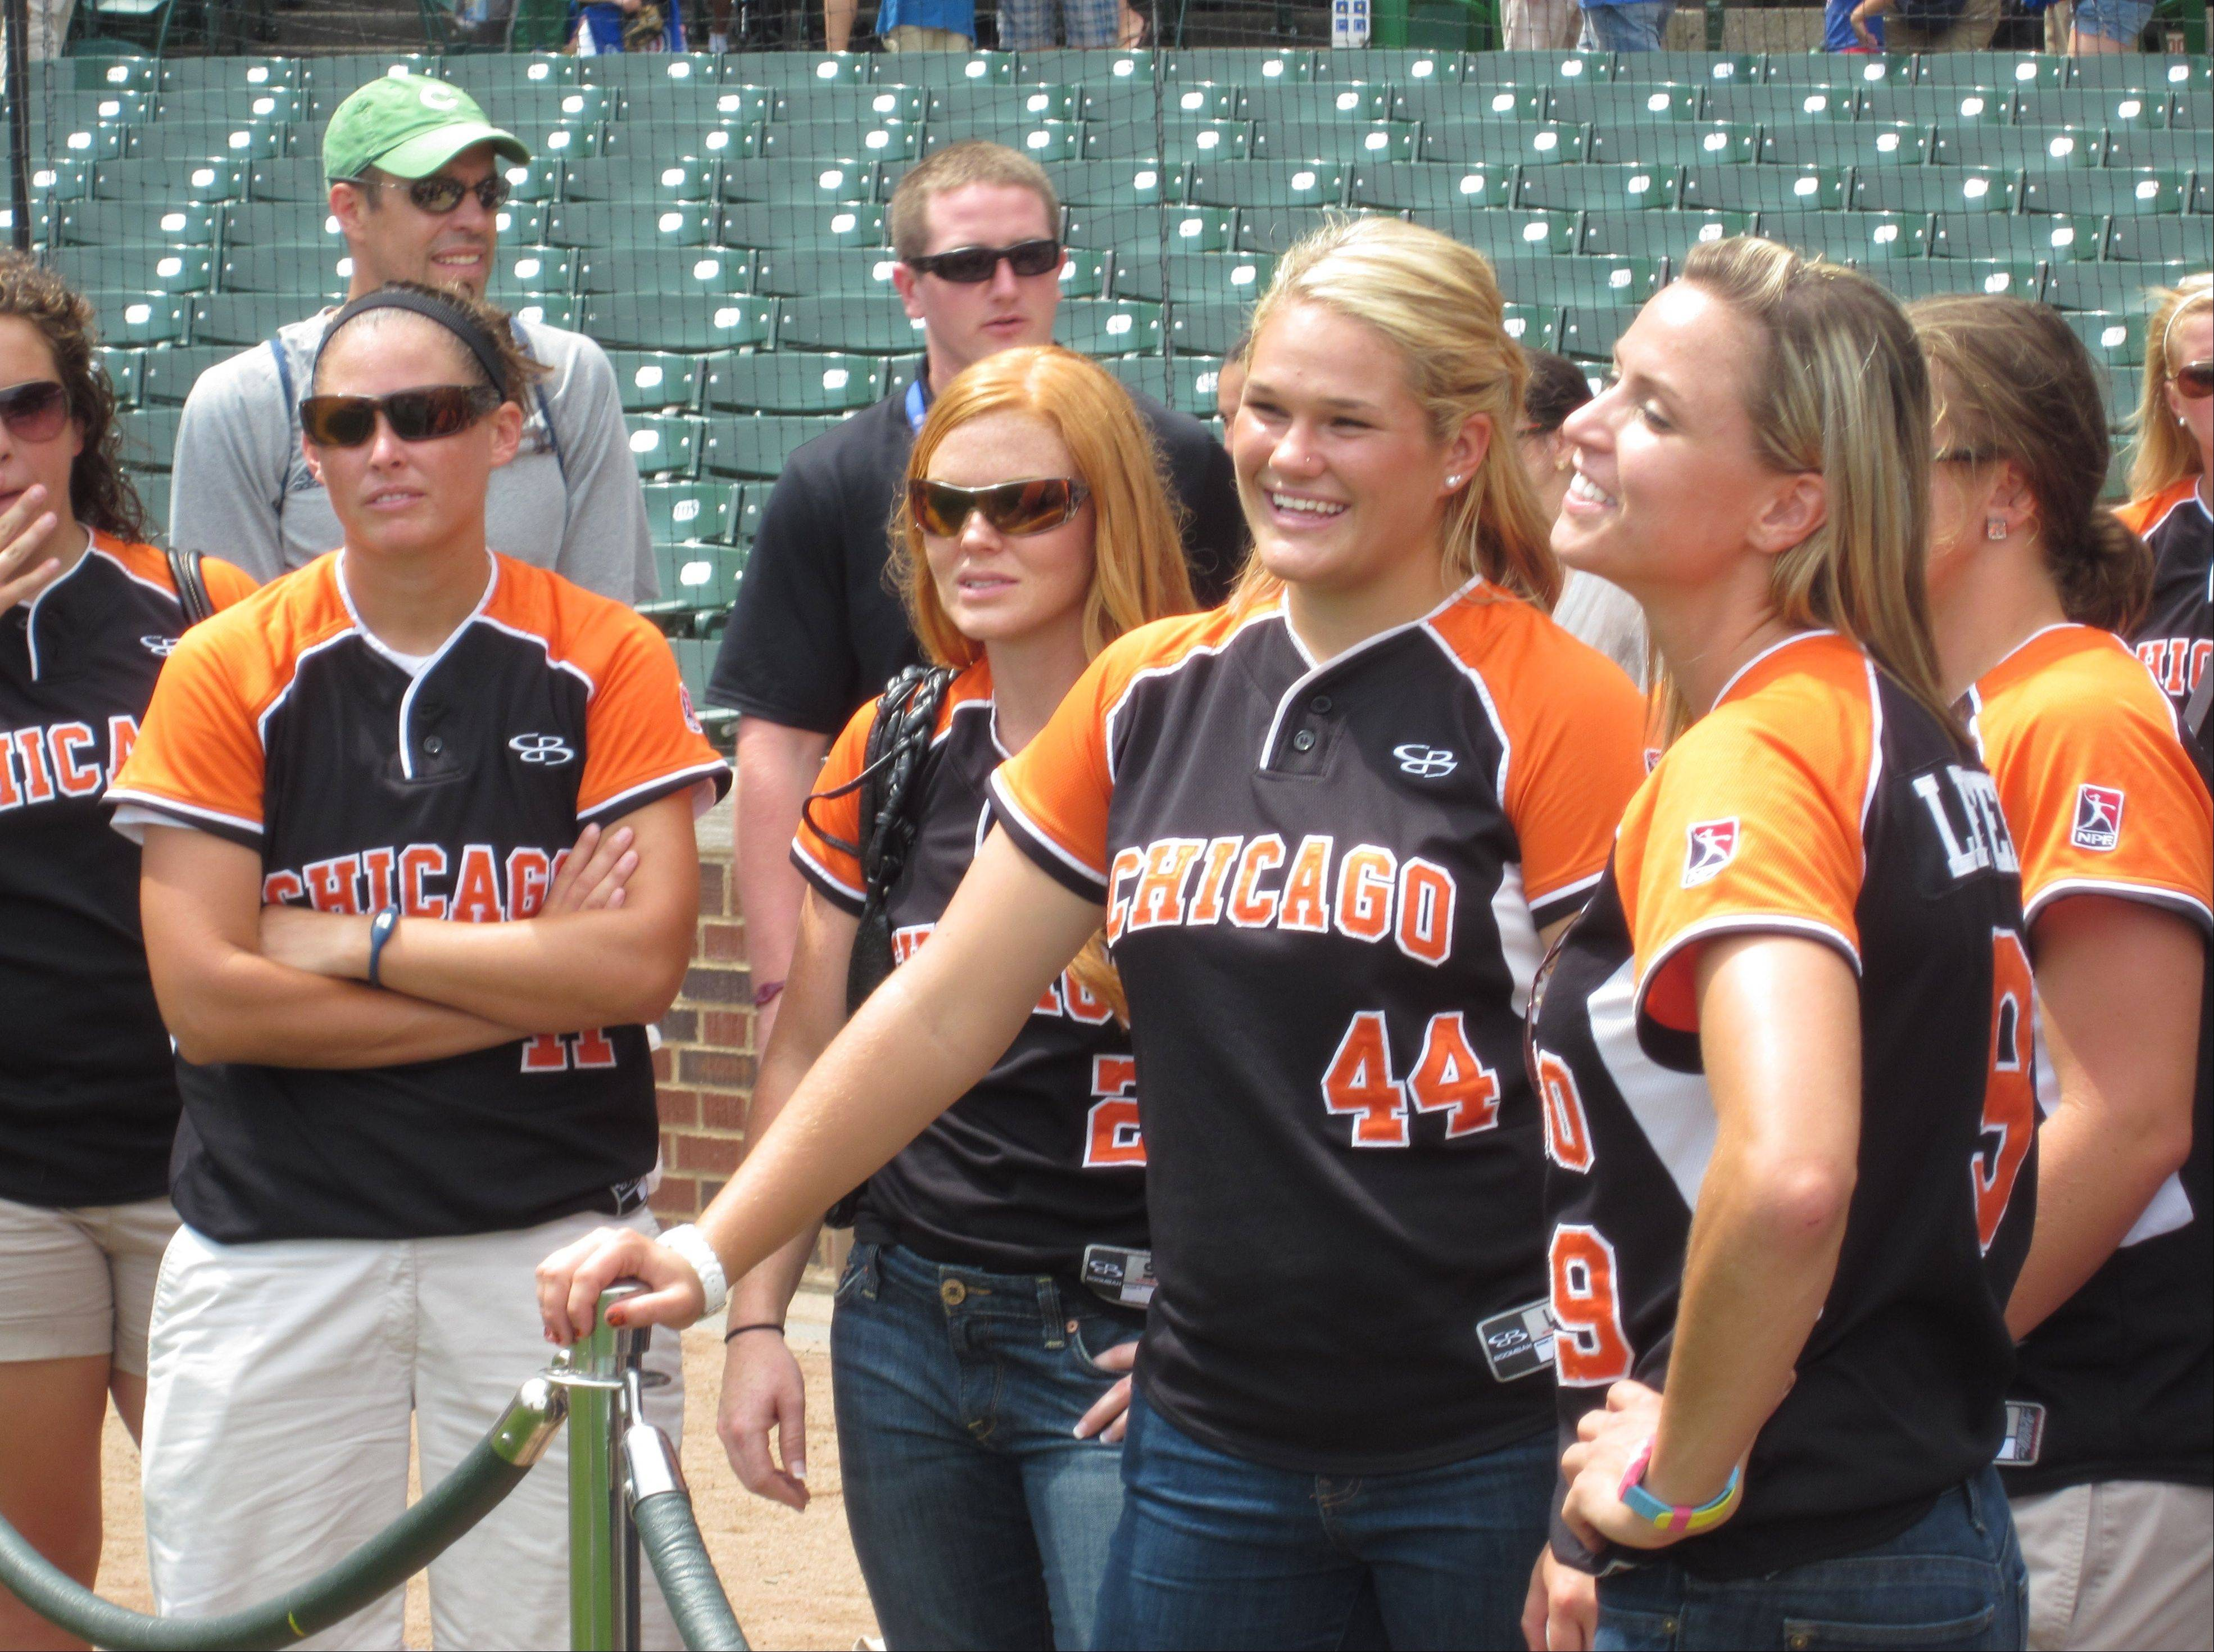 A day after recording a perfect game against Akron, Chicago Bandits players visited Wrigley Field on Friday to cheer for star pitcher Monica Abbott, who threw out the first pitch before the Cubs-Reds game. From left to right are: No. 11 Shannon Doepking, catcher; No. 2 Tammy Williams, infielder; No. 44 Nikki Nemitz, pitcher; and No. 9 Caitlin Lever, outfielder. The Bandit will play the Akron Racers in the second game of a four-game series tonight at Rosemont Stadium.